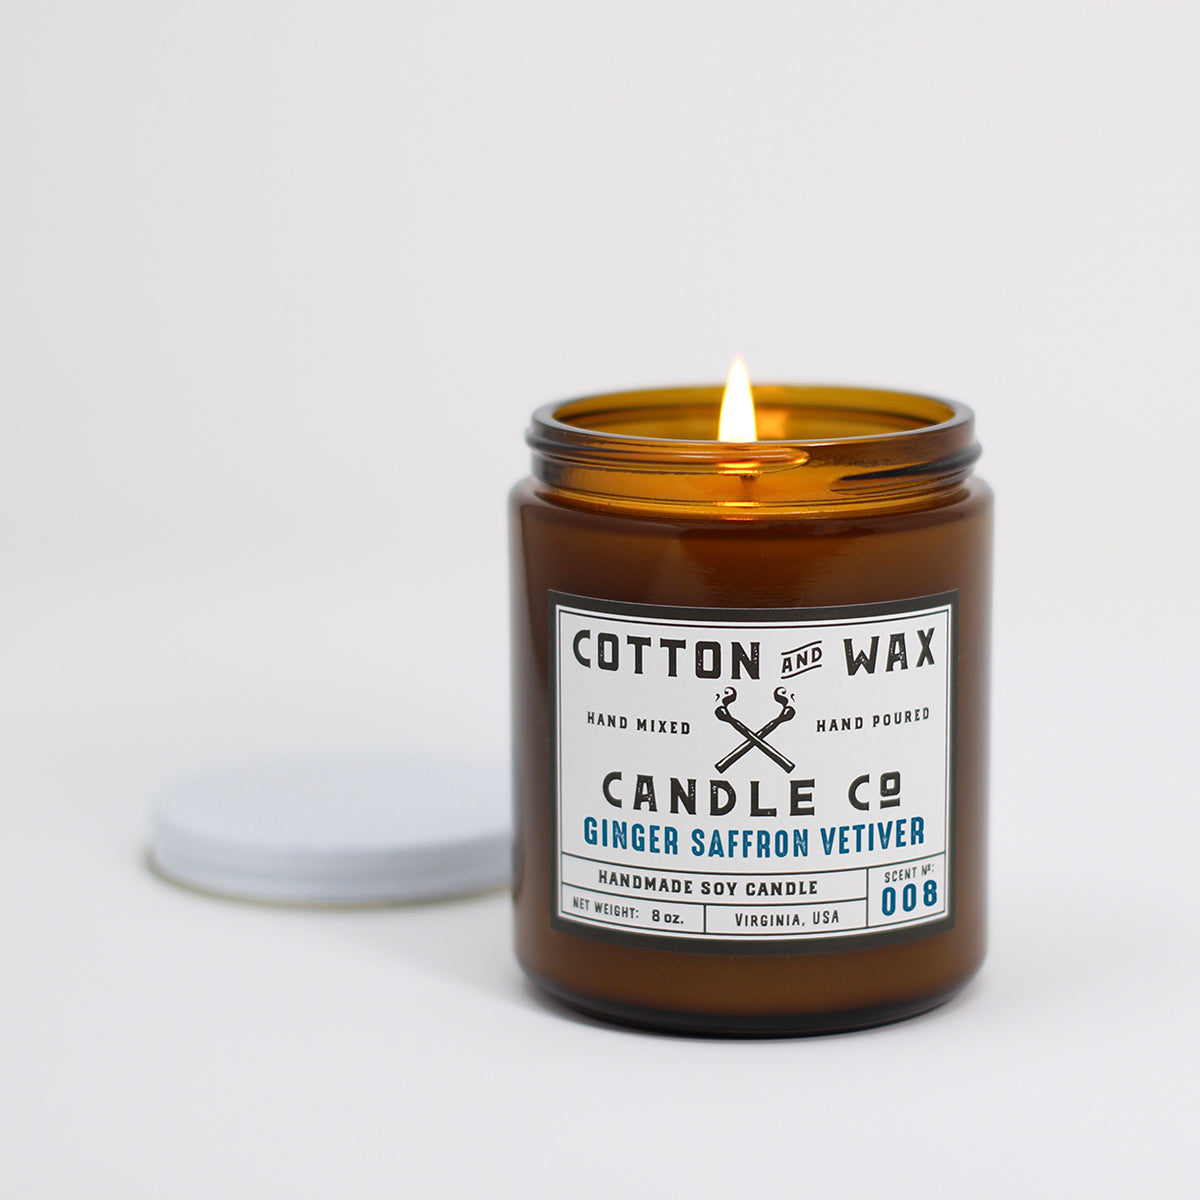 Cotton and Wax Candle Co. Ginger Saffron Vetiver Handmade Scented Soy Candle